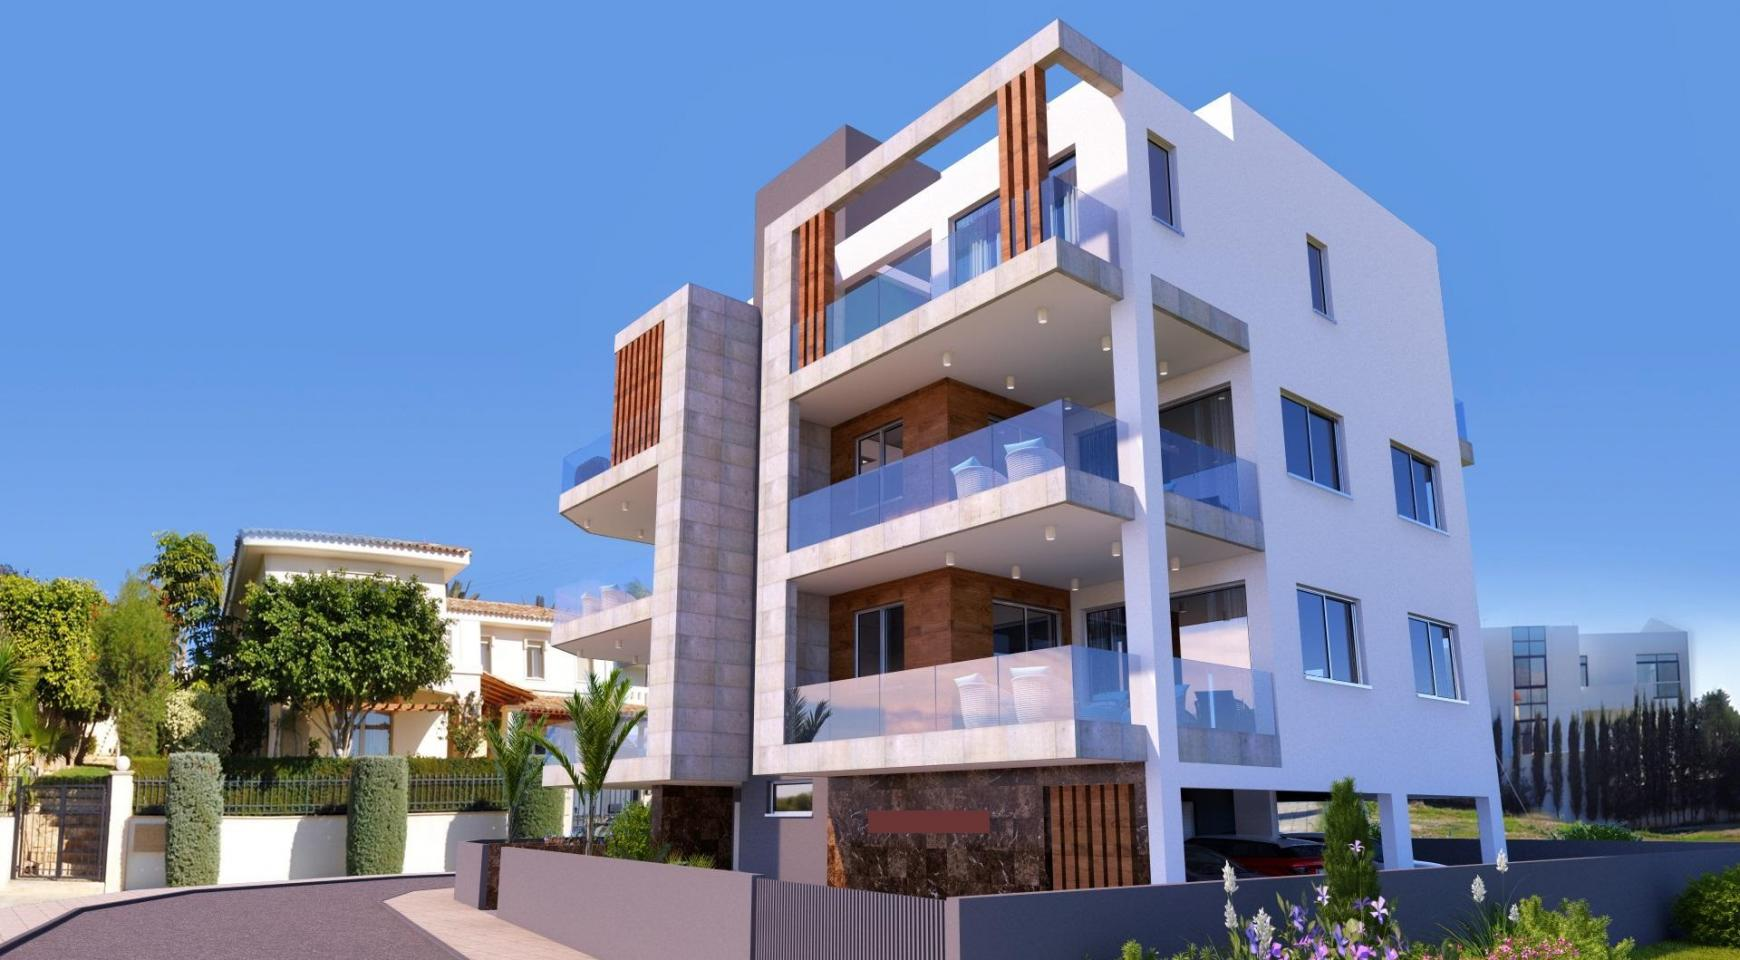 3 Bedroom Apartment in a Contemporary Building in Potamos Germasogeia - 3